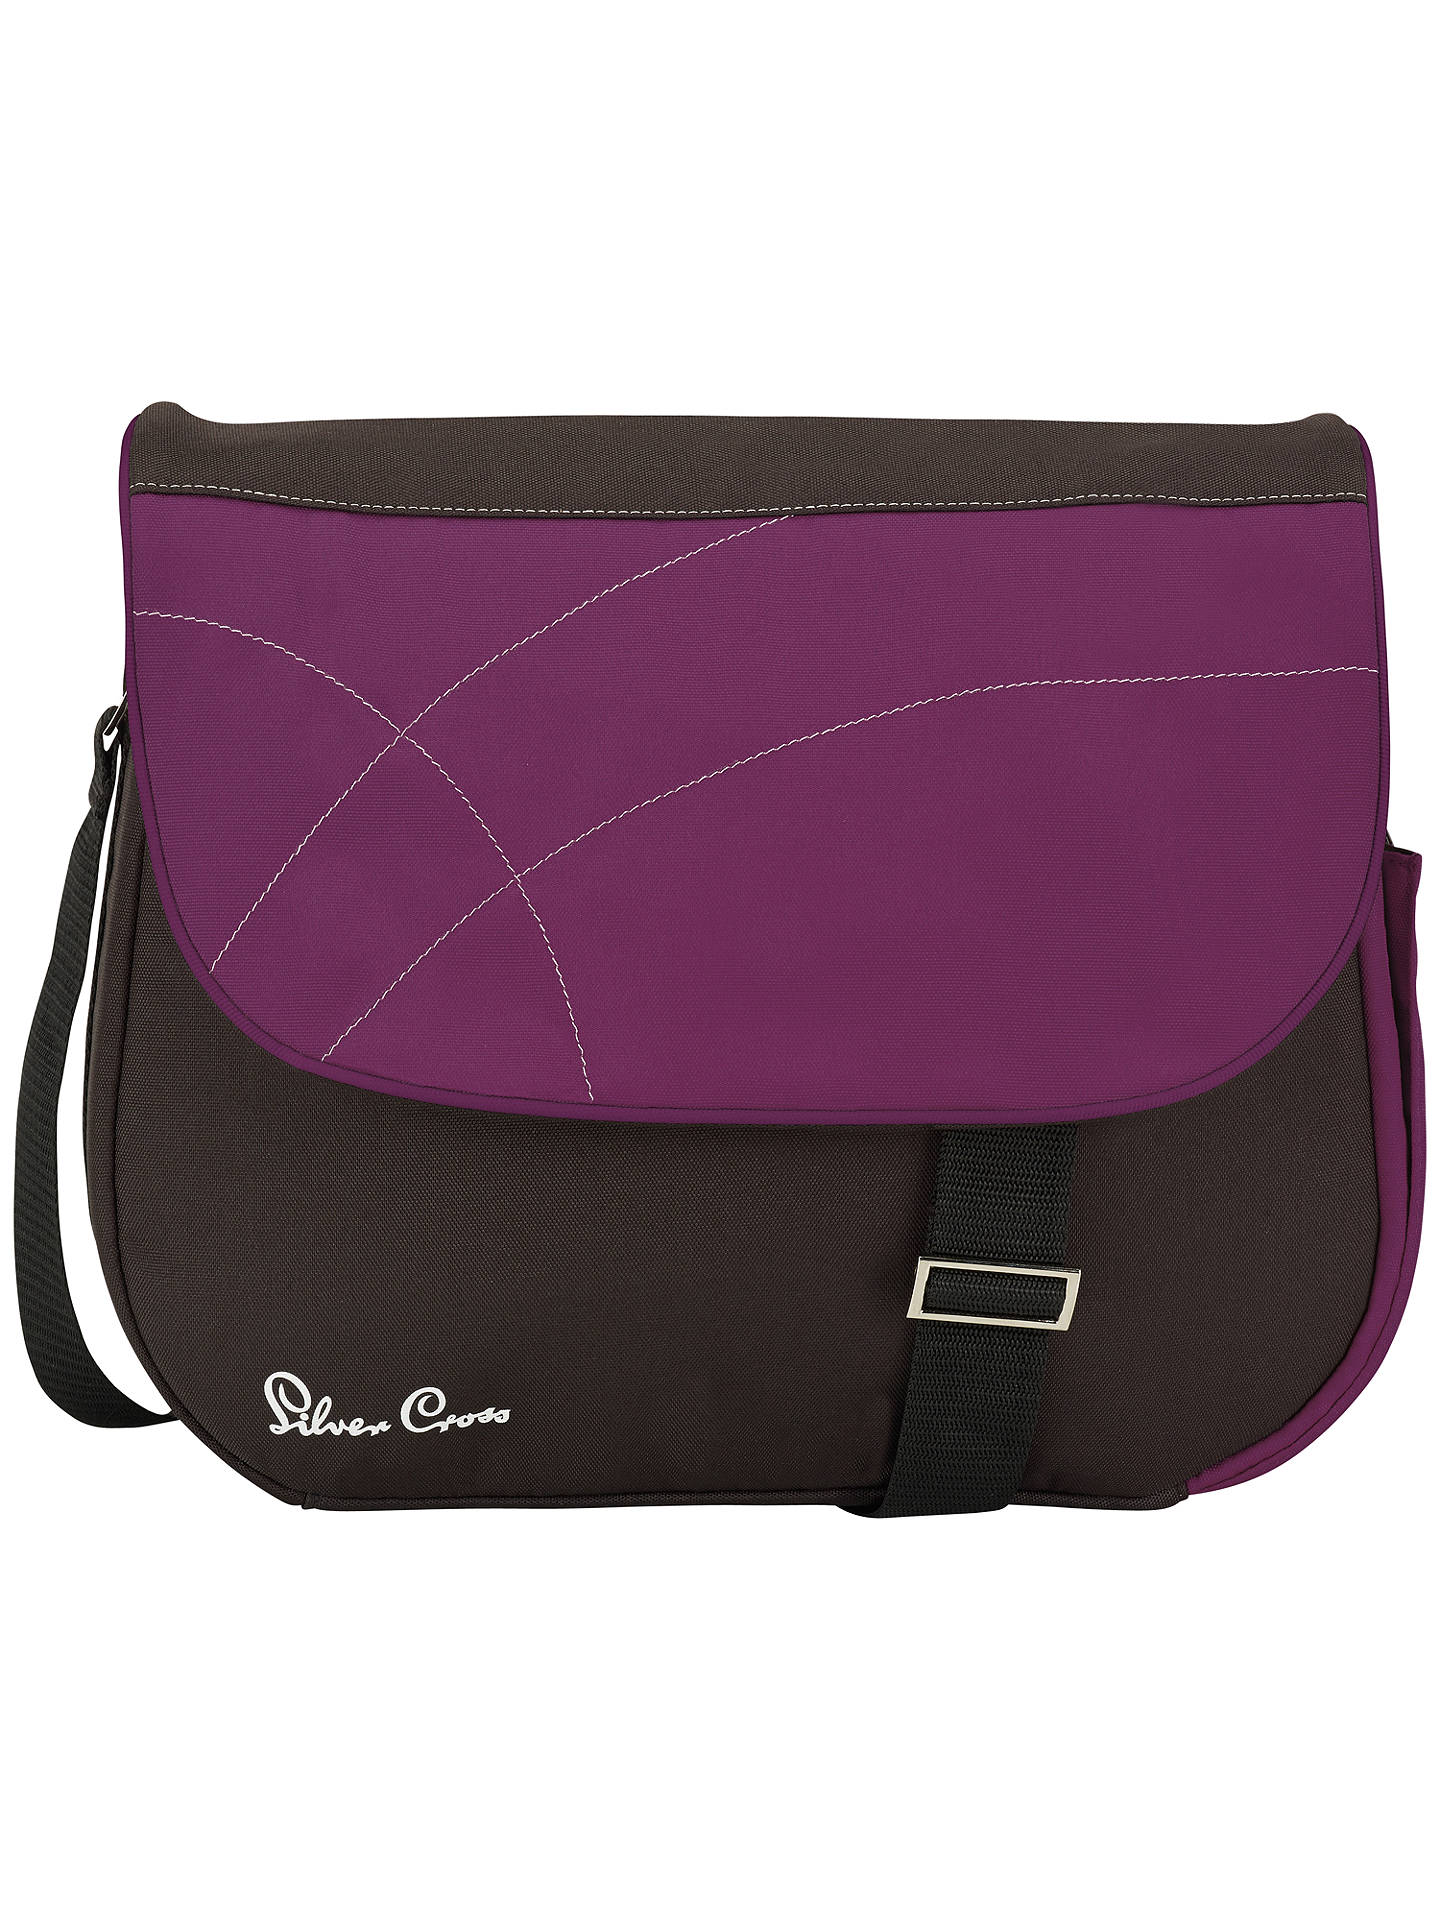 BuySilver Cross Wayfarer, Pioneer and Surf Changing Bag, Damson Online at johnlewis.com